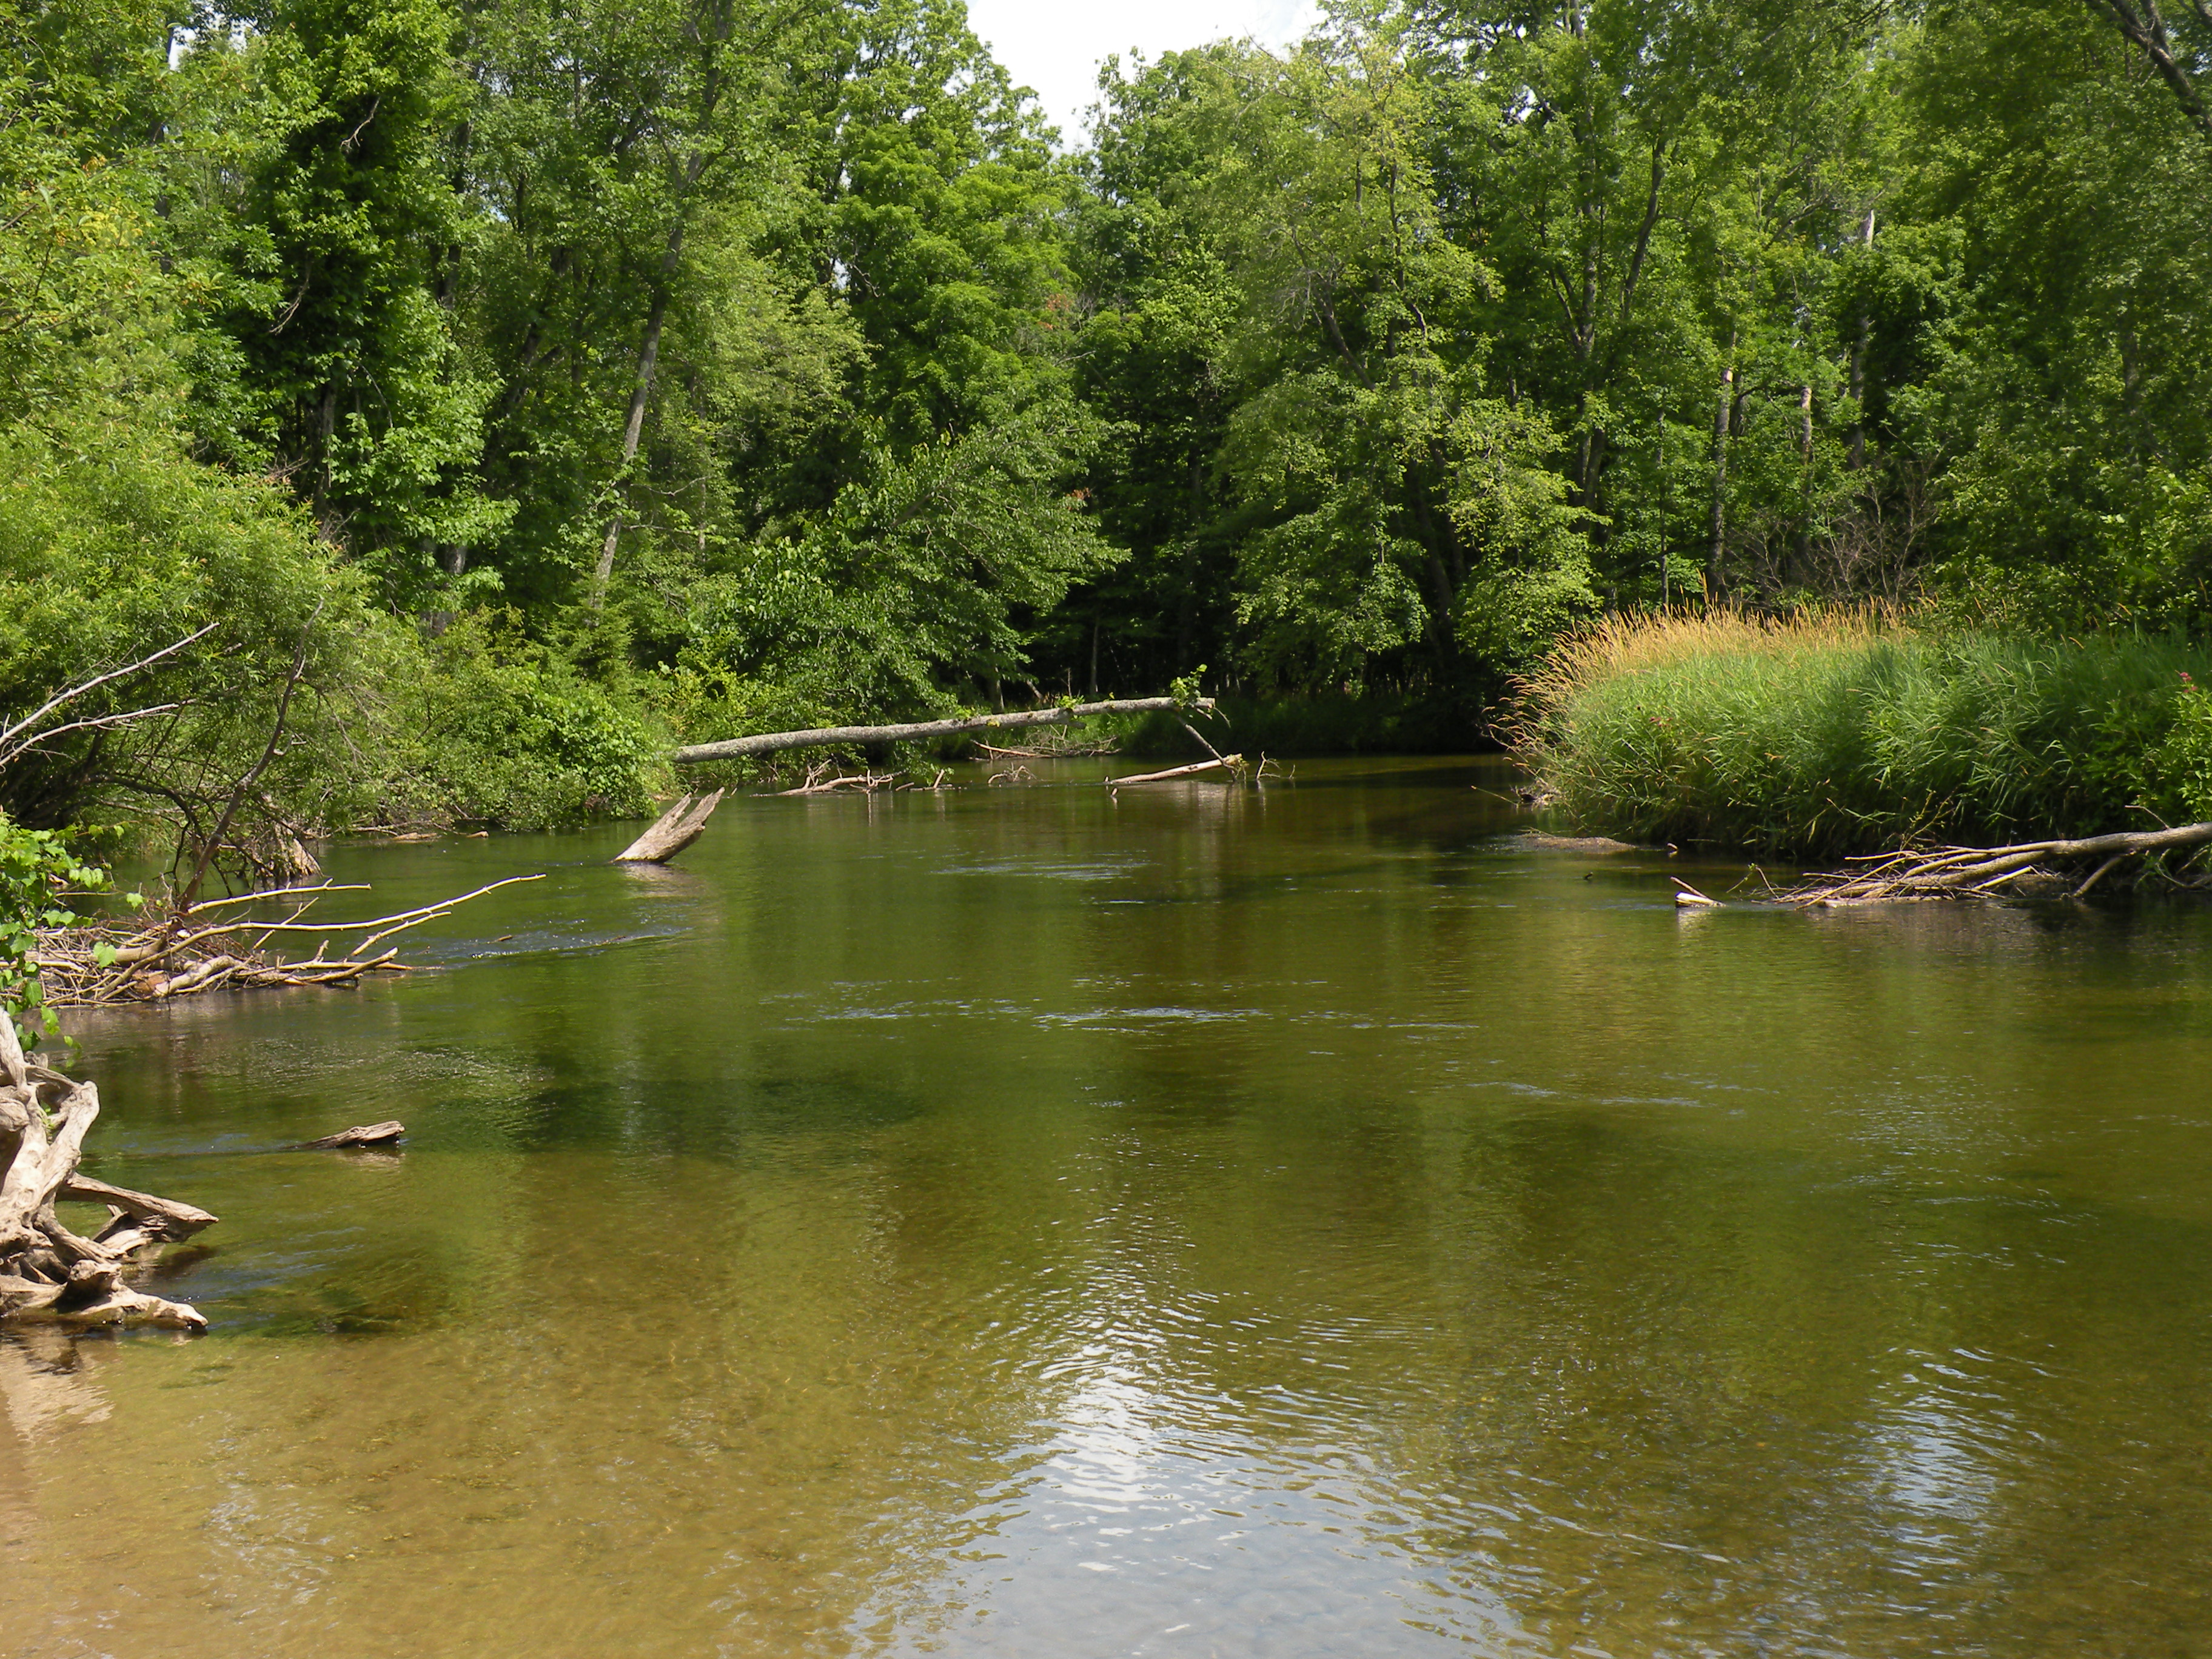 Pere Marquette National Scenic River - near Bowman Bridge Day Use Area